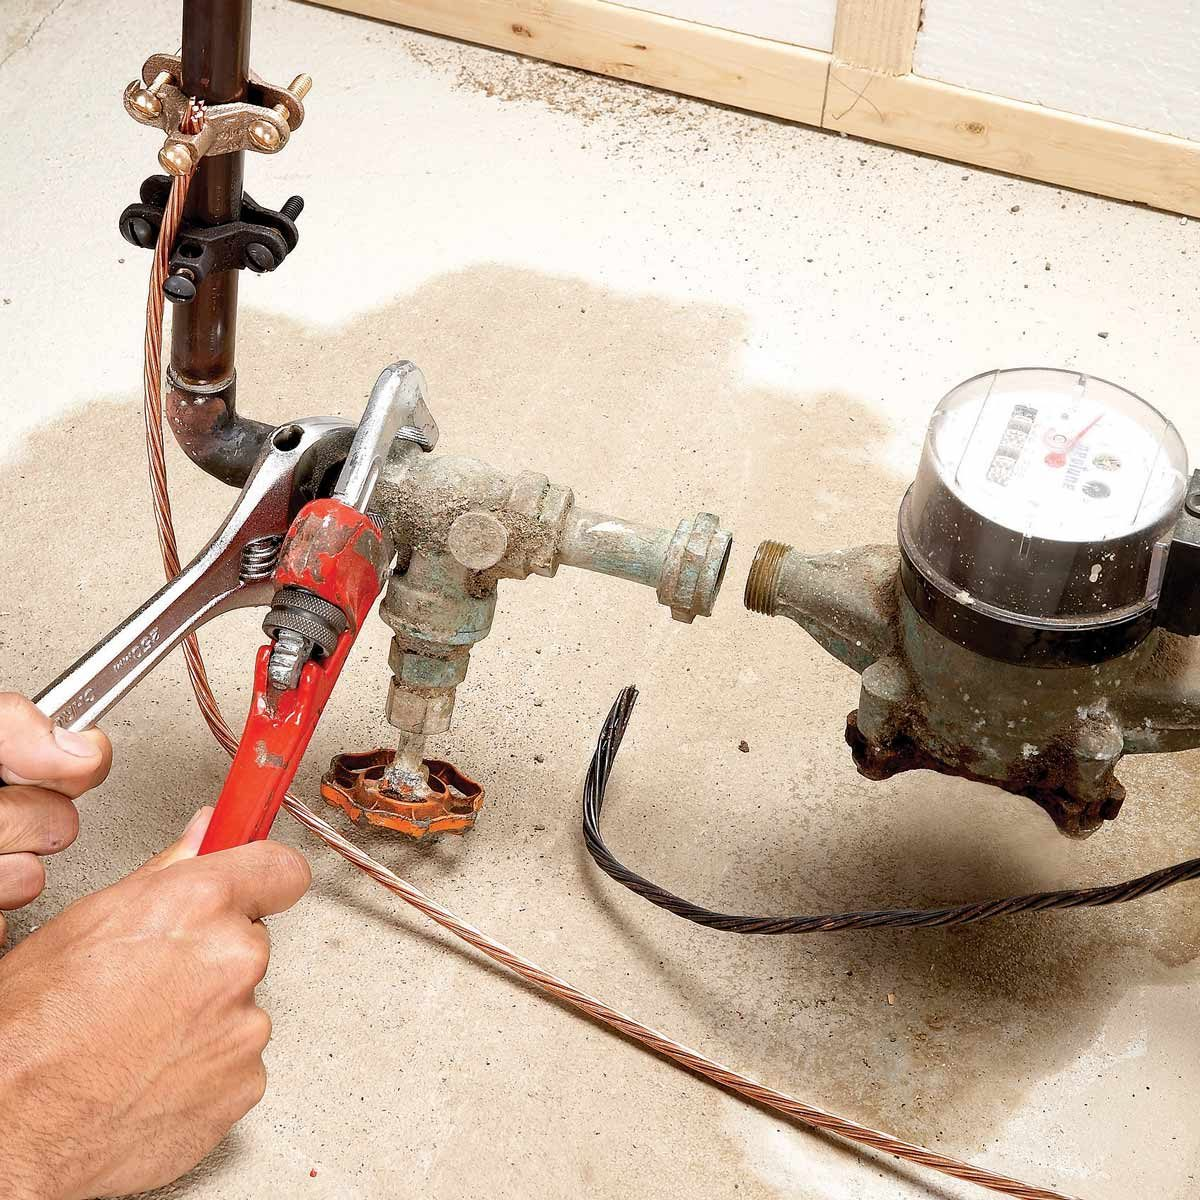 to replace the main shut off valve